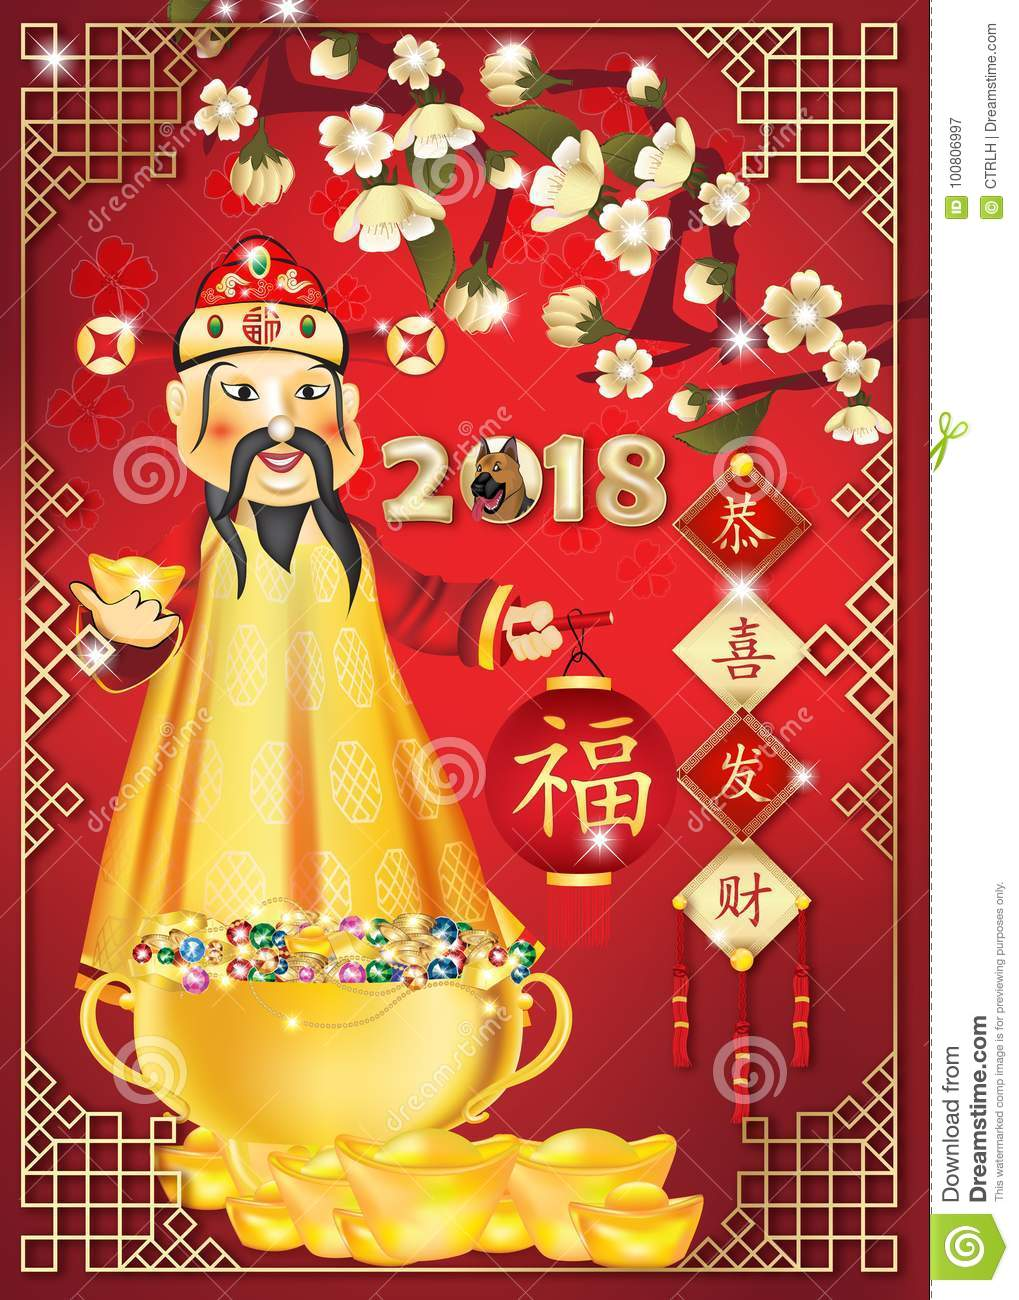 Business Chinese New Year 2018 Greeting Card Stock Illustration